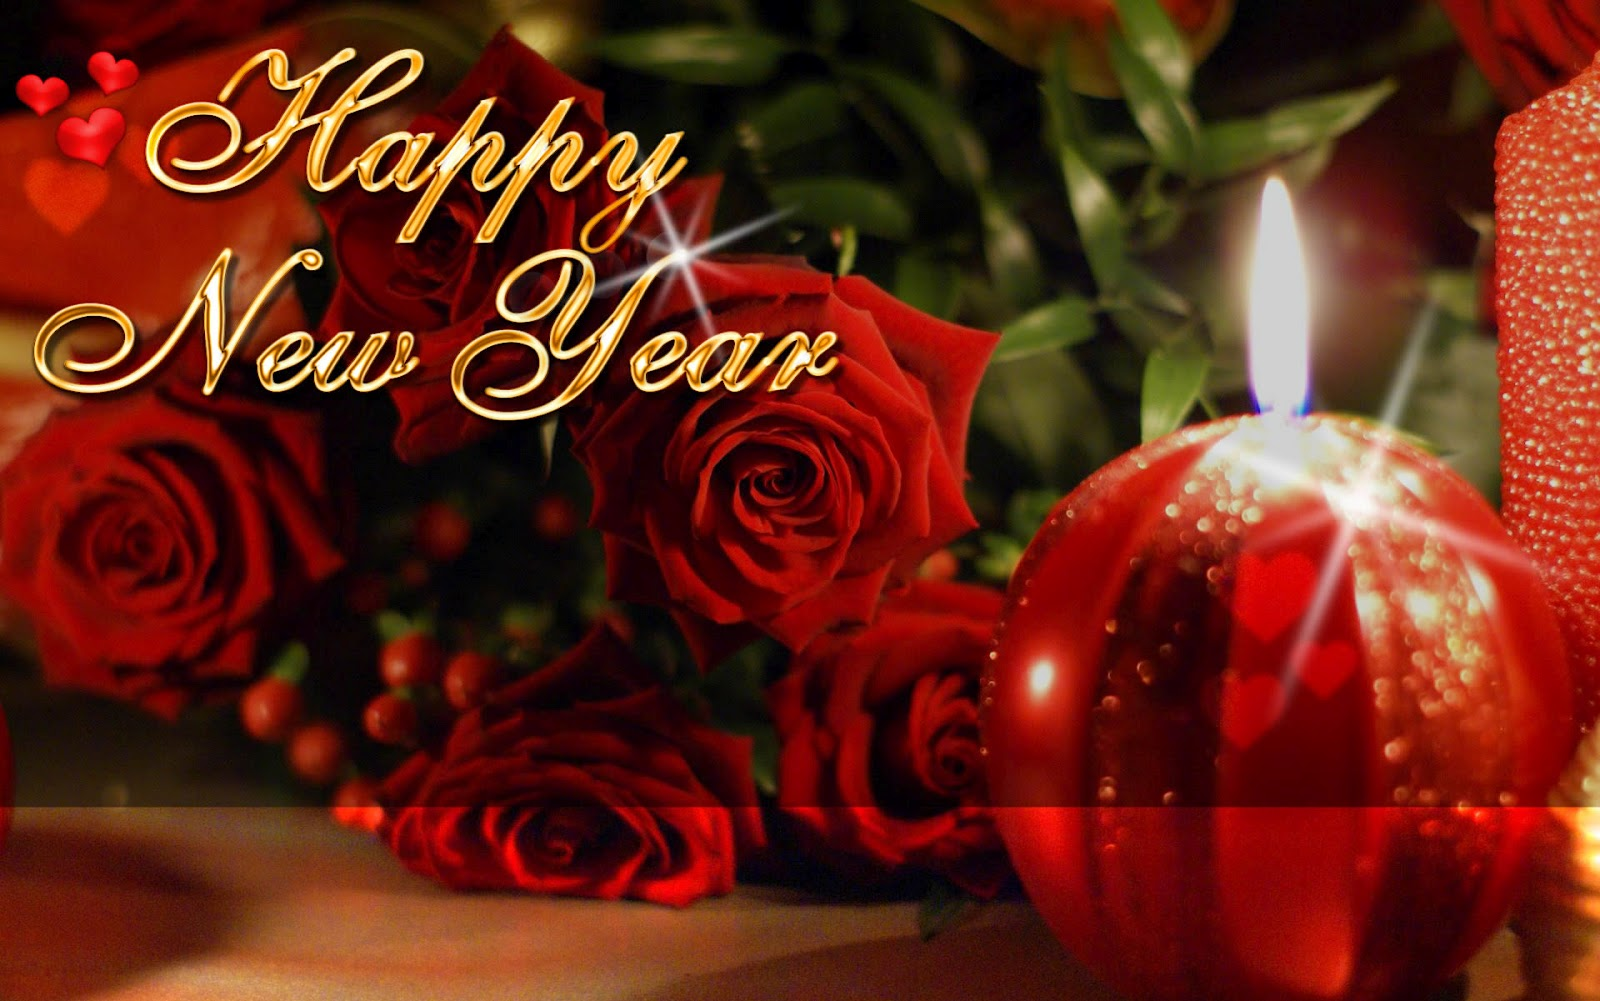 ... New Year 2015 - Happy New Year Wallpapers 2015-2016 ~ Pictures 2015